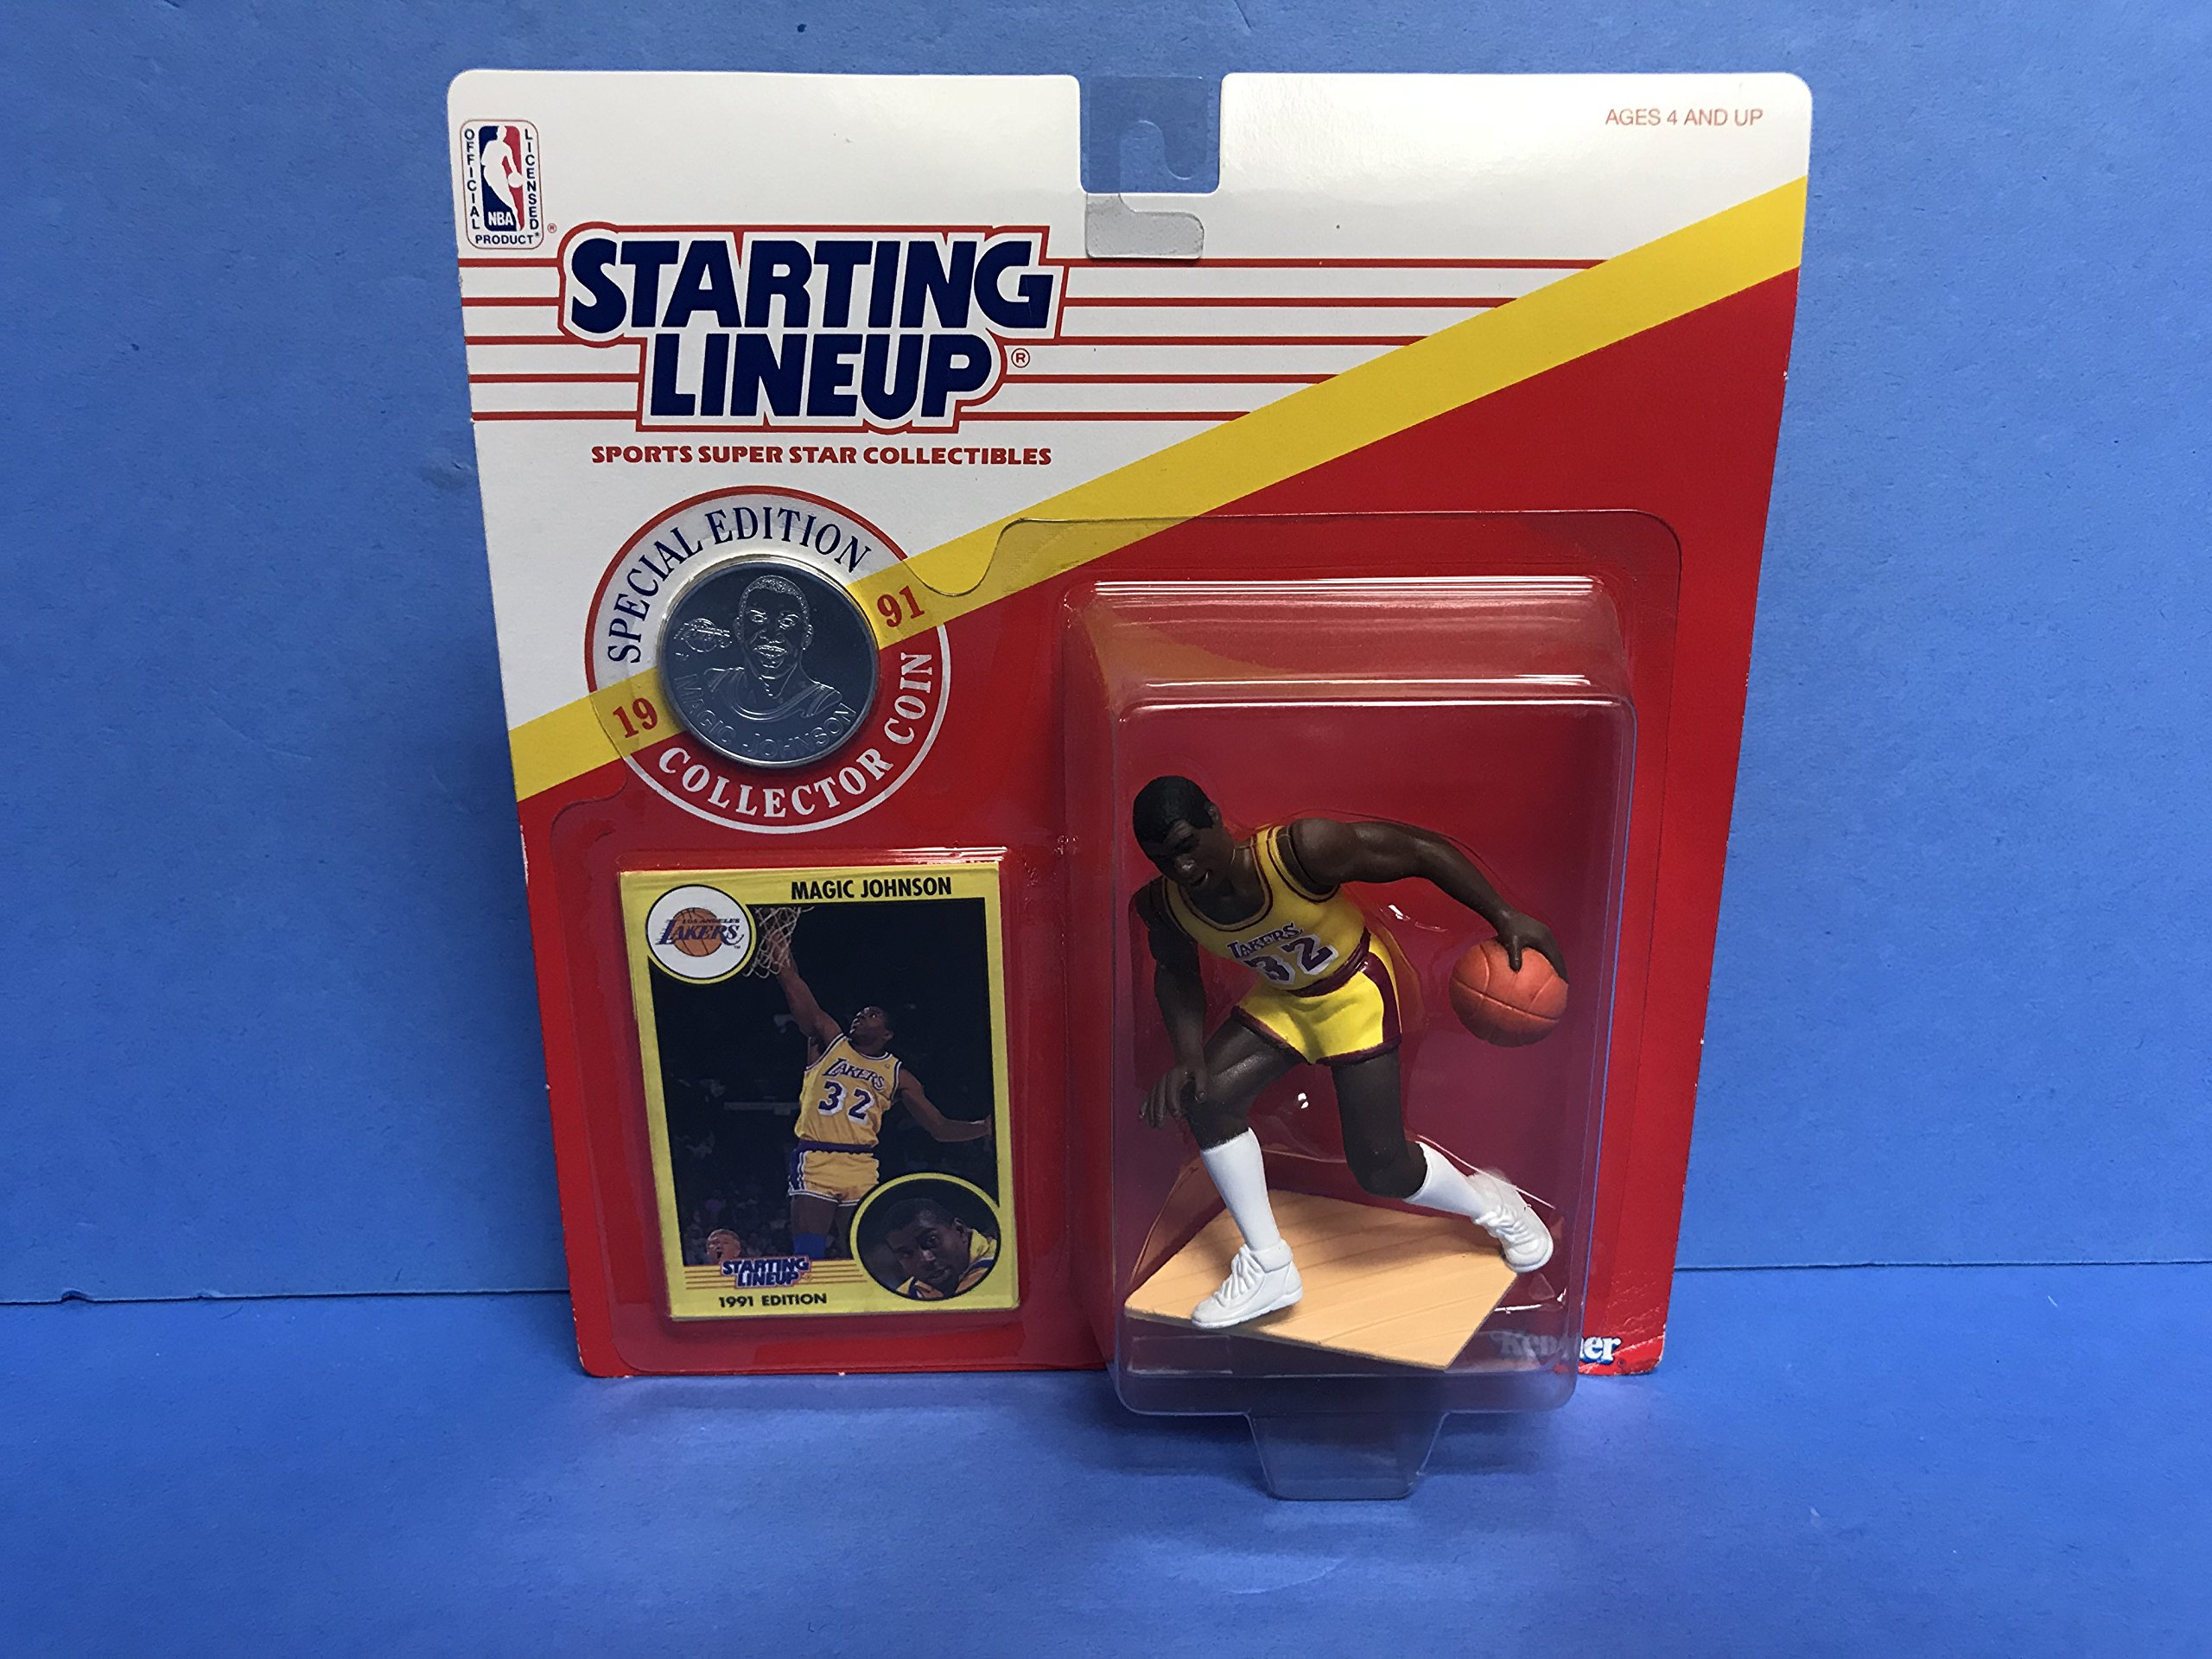 Magic Johnson Los Angeles Lakers Collectible Action Figure Toy with Trading Card and Special Edition Coin